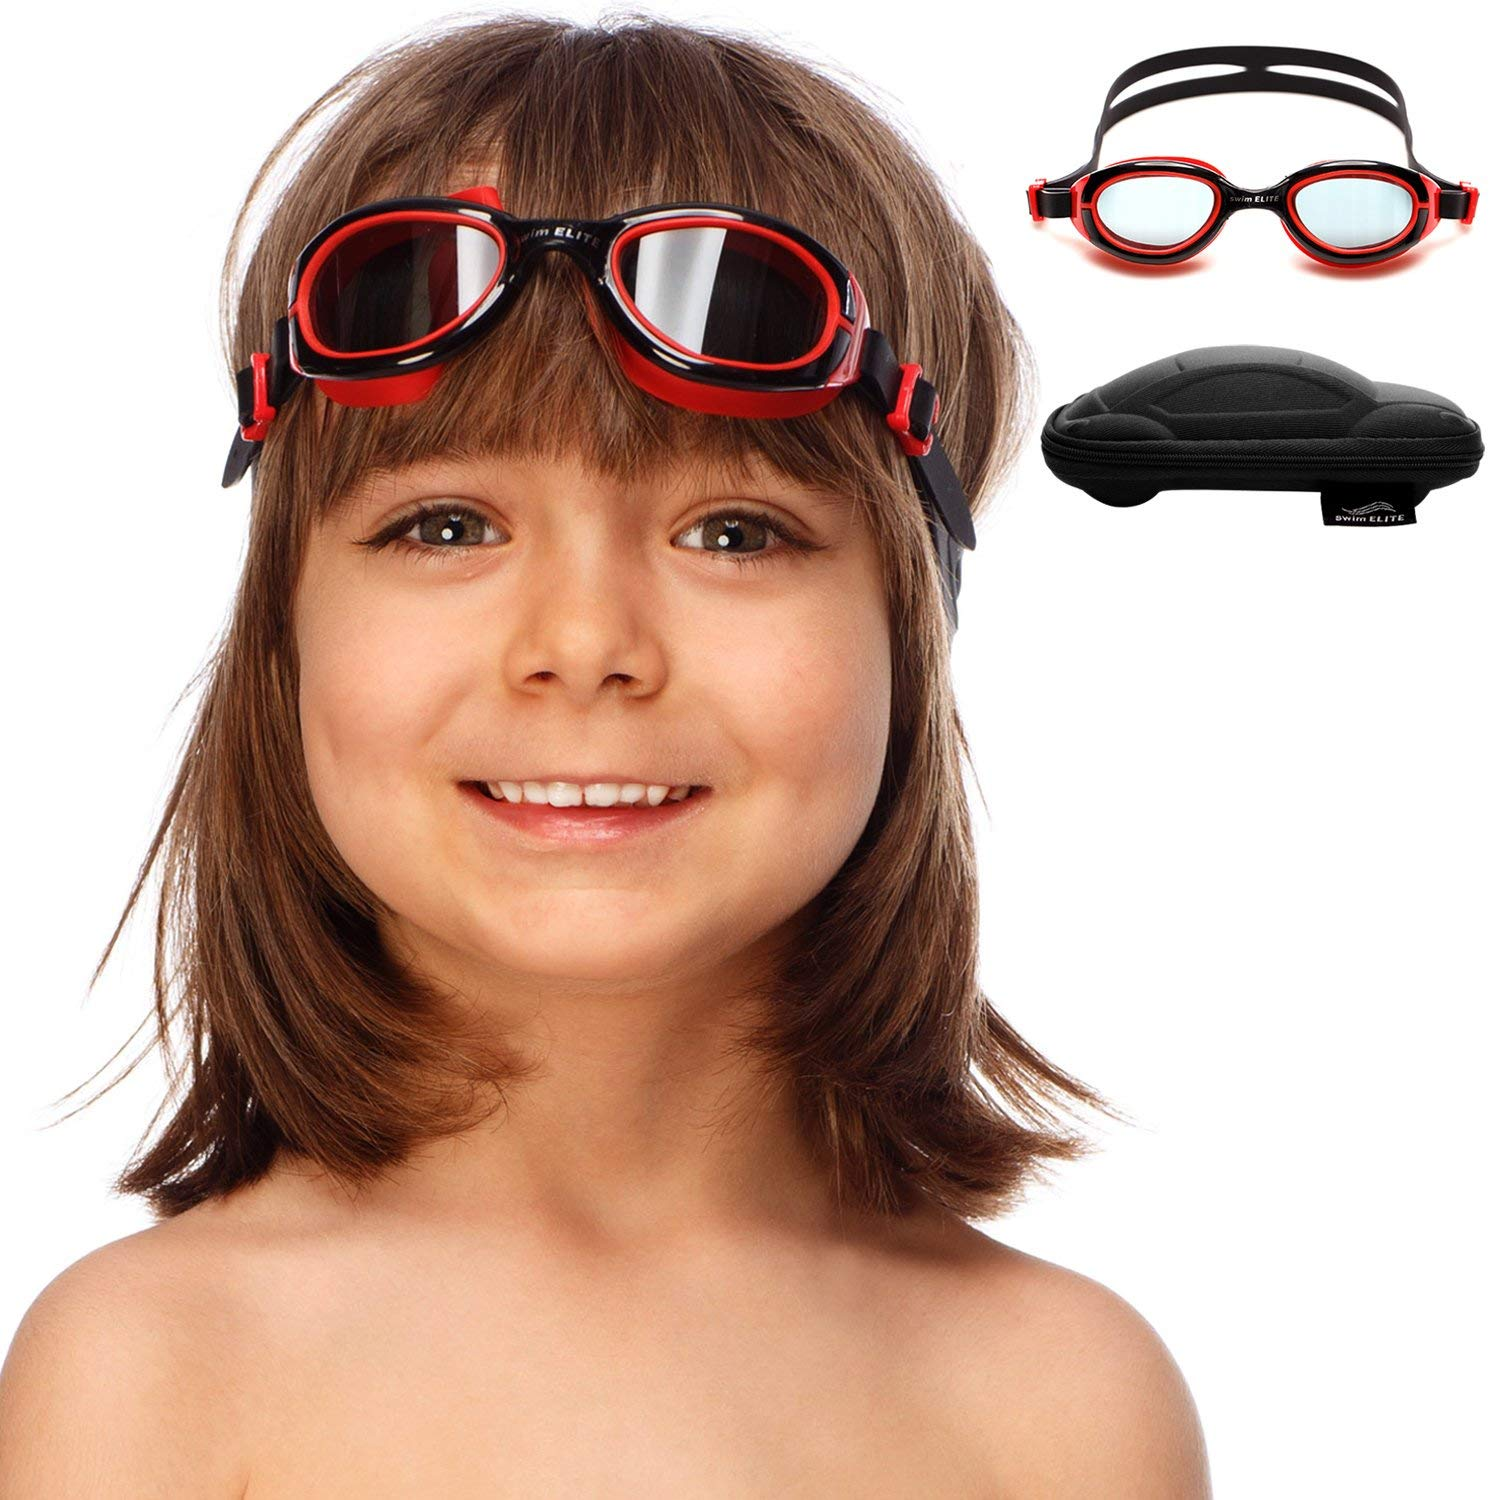 f675eb23fec Amazon.com   SWIM ELITE Kids Goggles for Swimming with Fun Car Hard Case  for Kids   Toddlers Age 2-8 Years Old (Black)   Sports   Outdoors